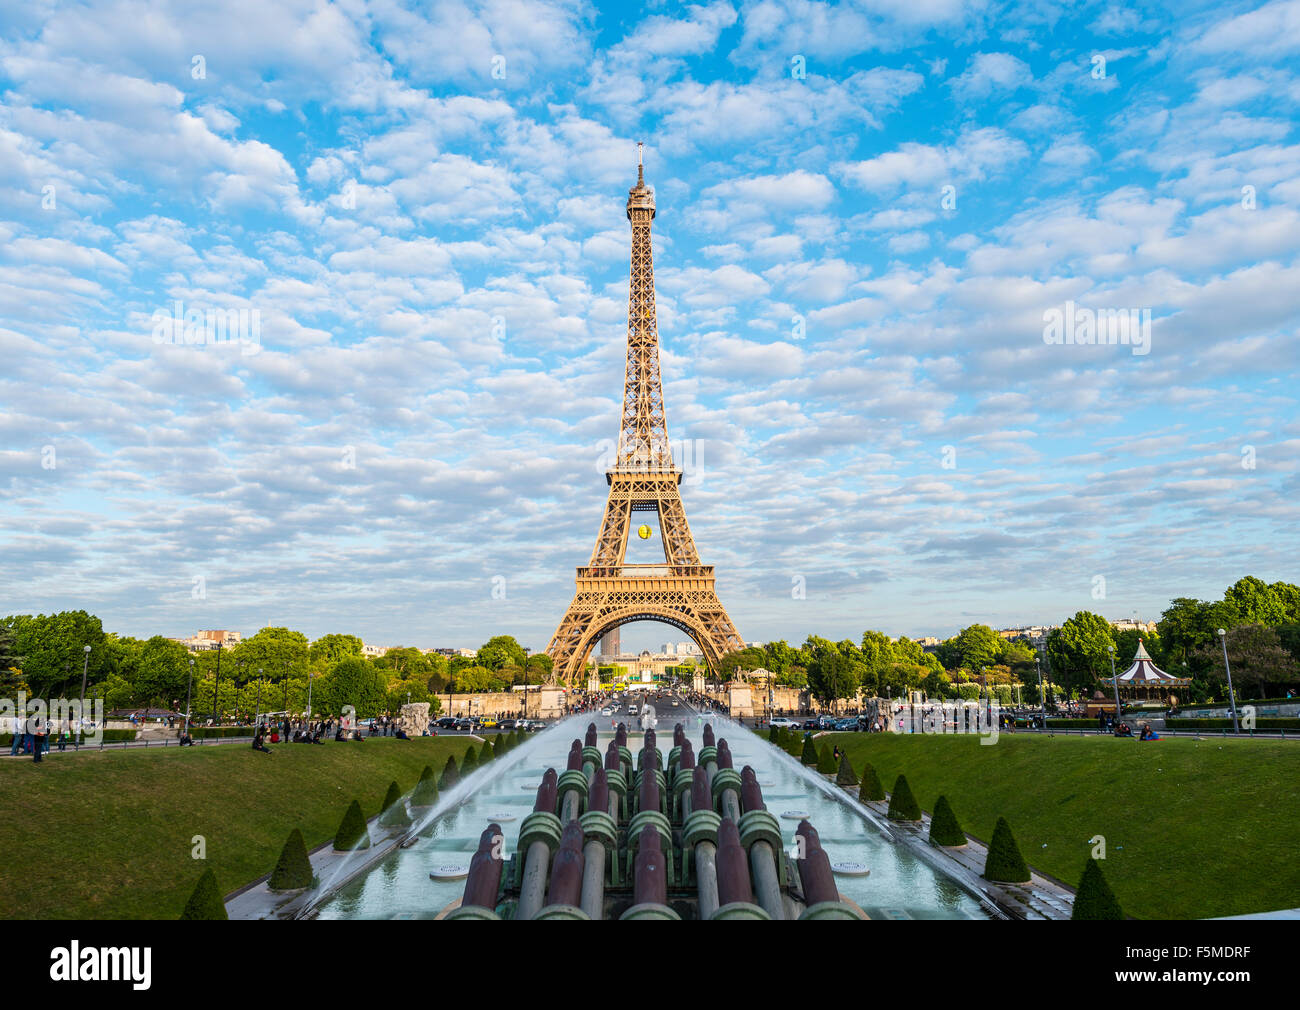 Eiffel Tower, tour Eiffel and Trocadero, Paris, Ile-de-France, France Stock Photo